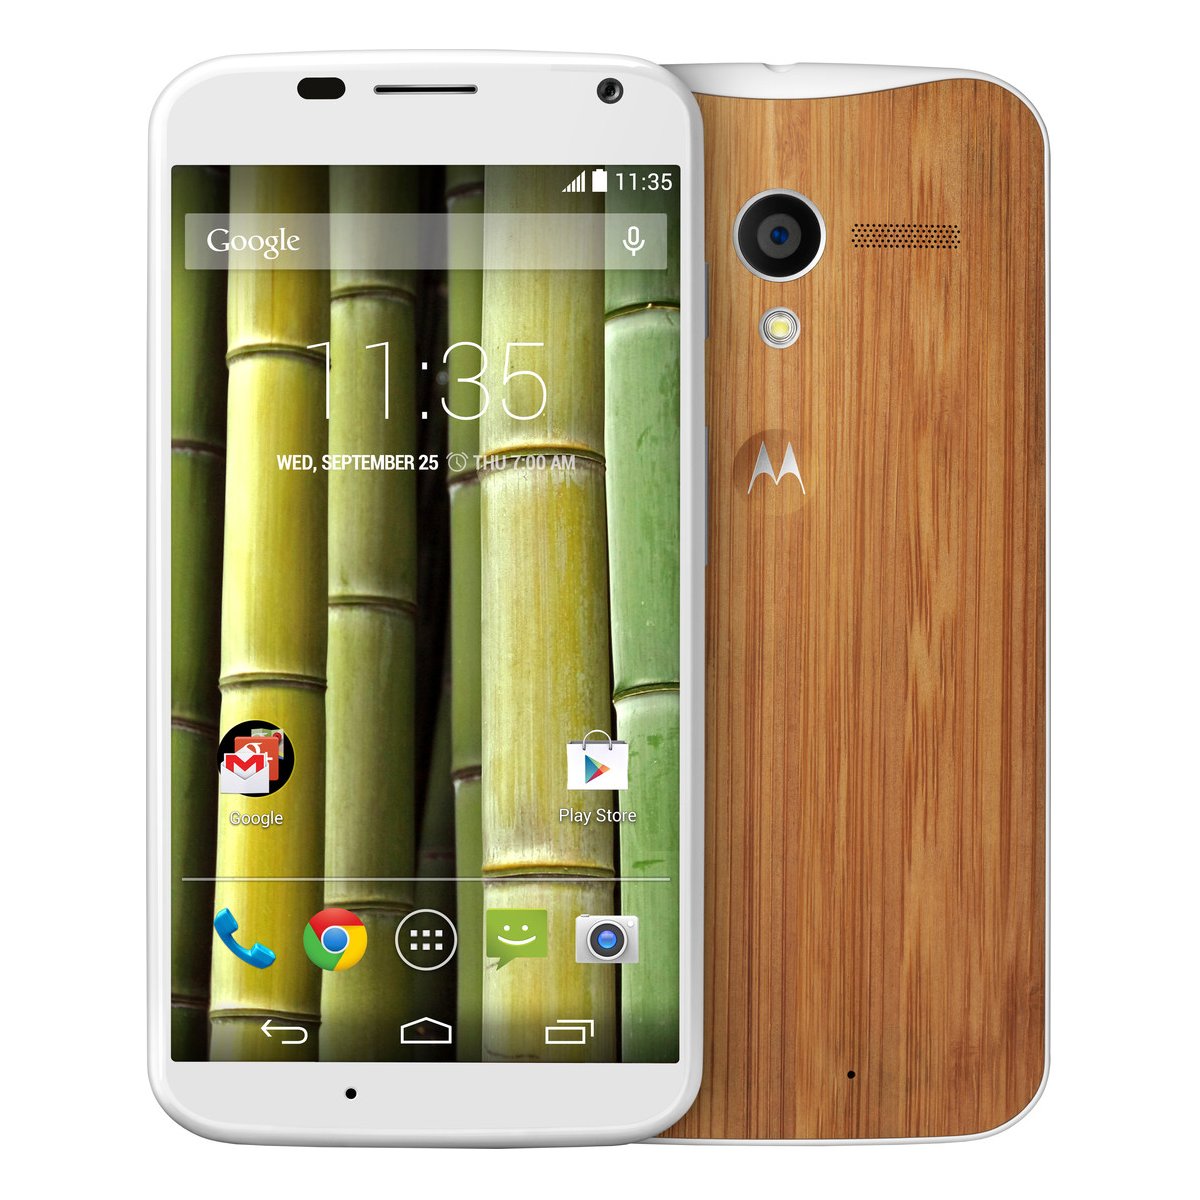 motorola moto x wifi gps android 4g lte phone sprint in white with bamboo back panel good. Black Bedroom Furniture Sets. Home Design Ideas